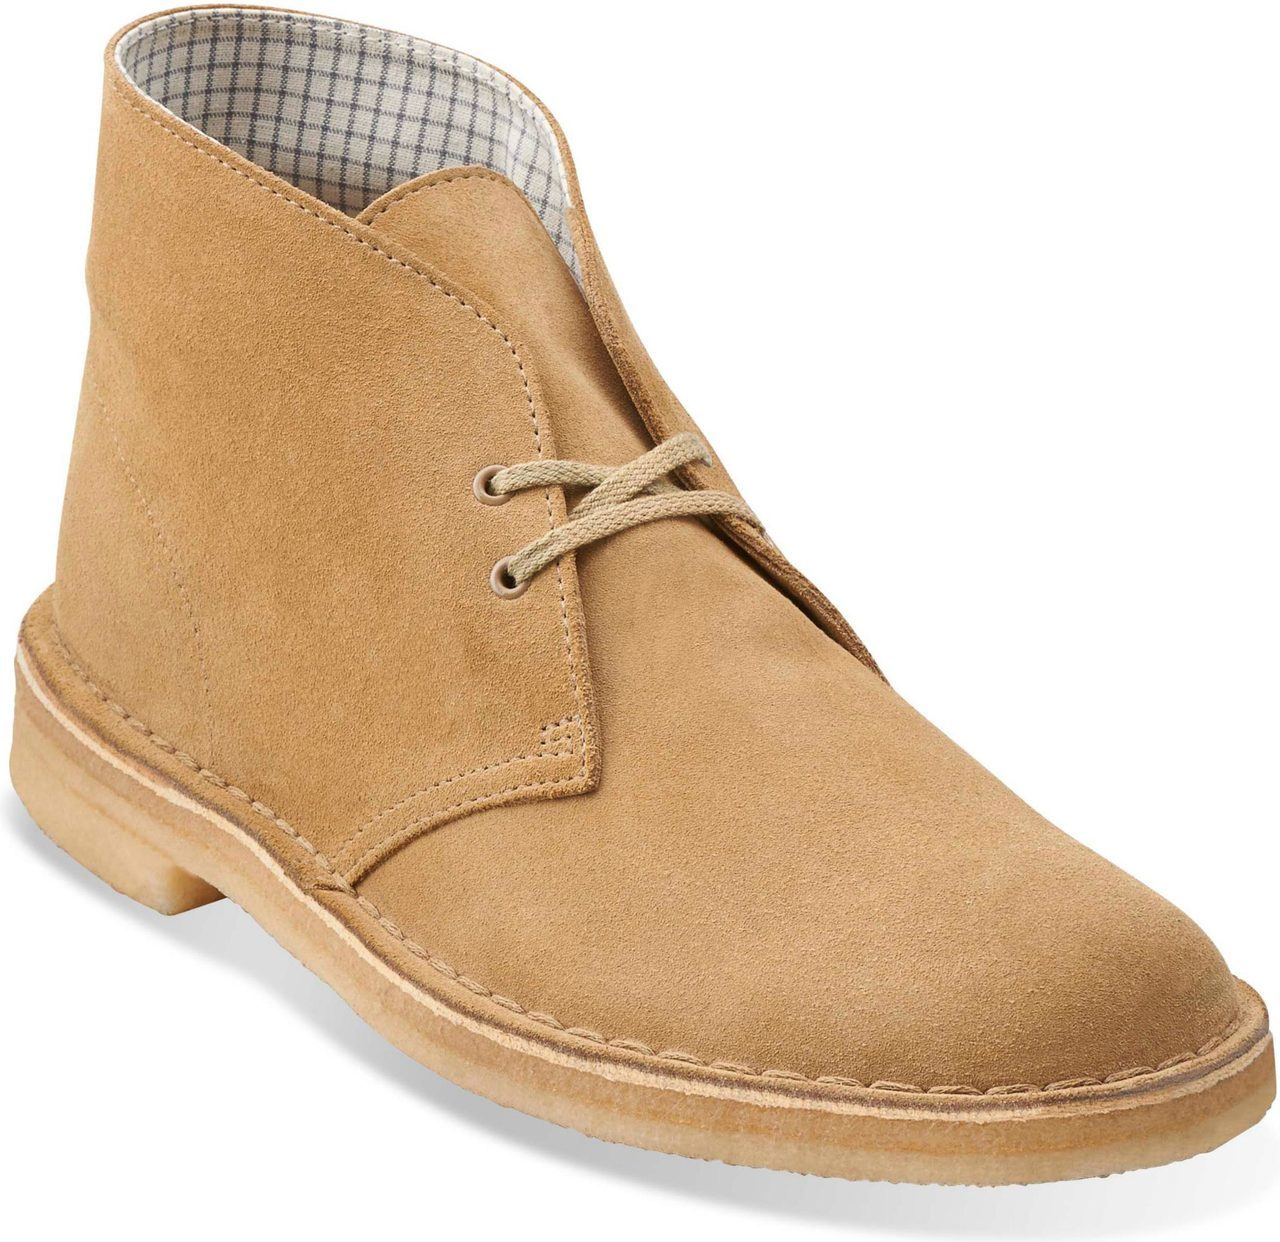 Clarks Mens Desert Boot in Oakwood Suede